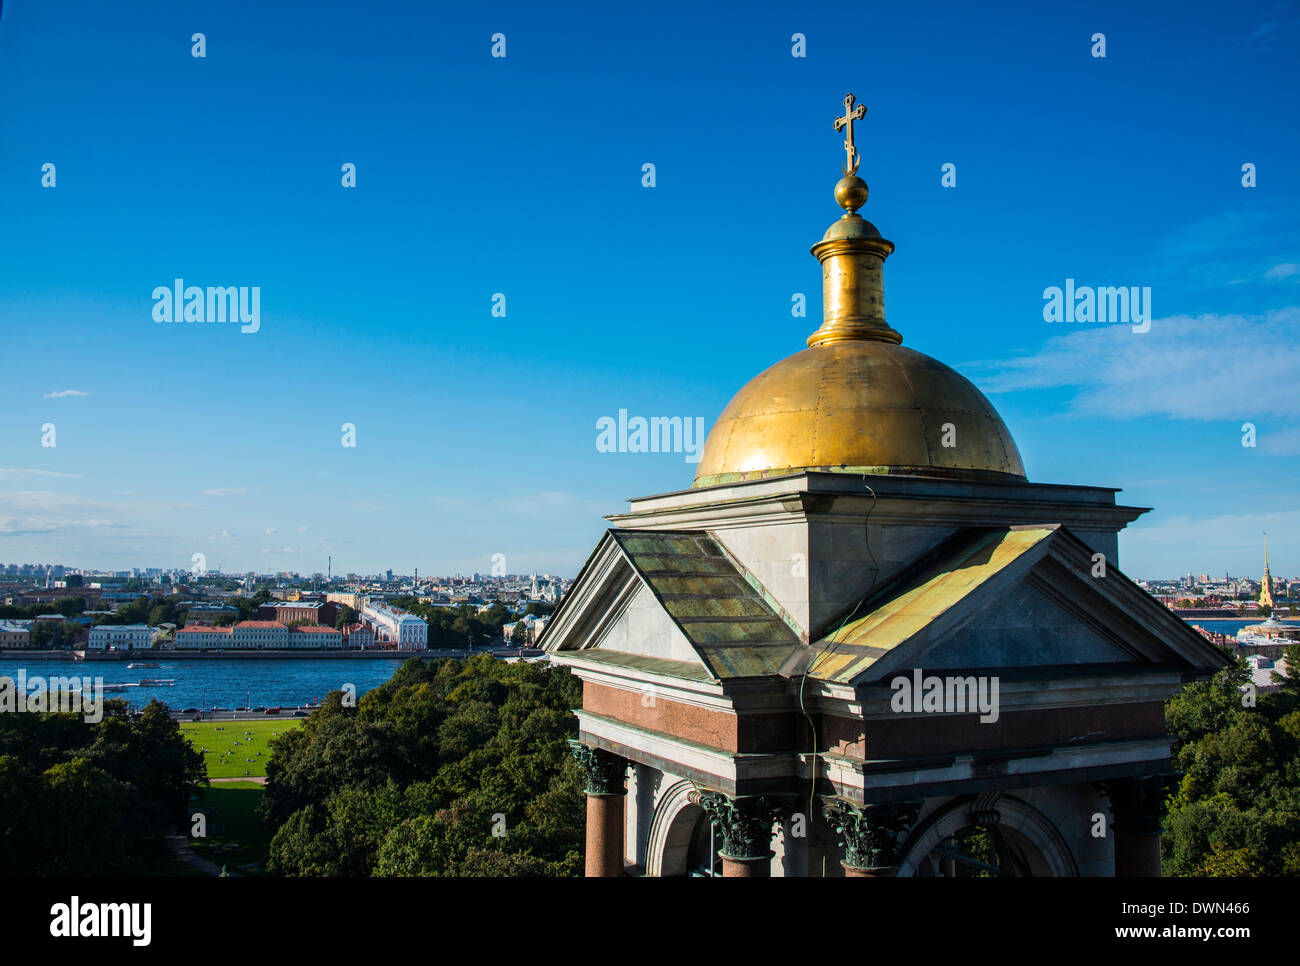 View from St. Isaac's Cathedral with a golden cupola, St. Petersburg, Russia, Europe - Stock Image